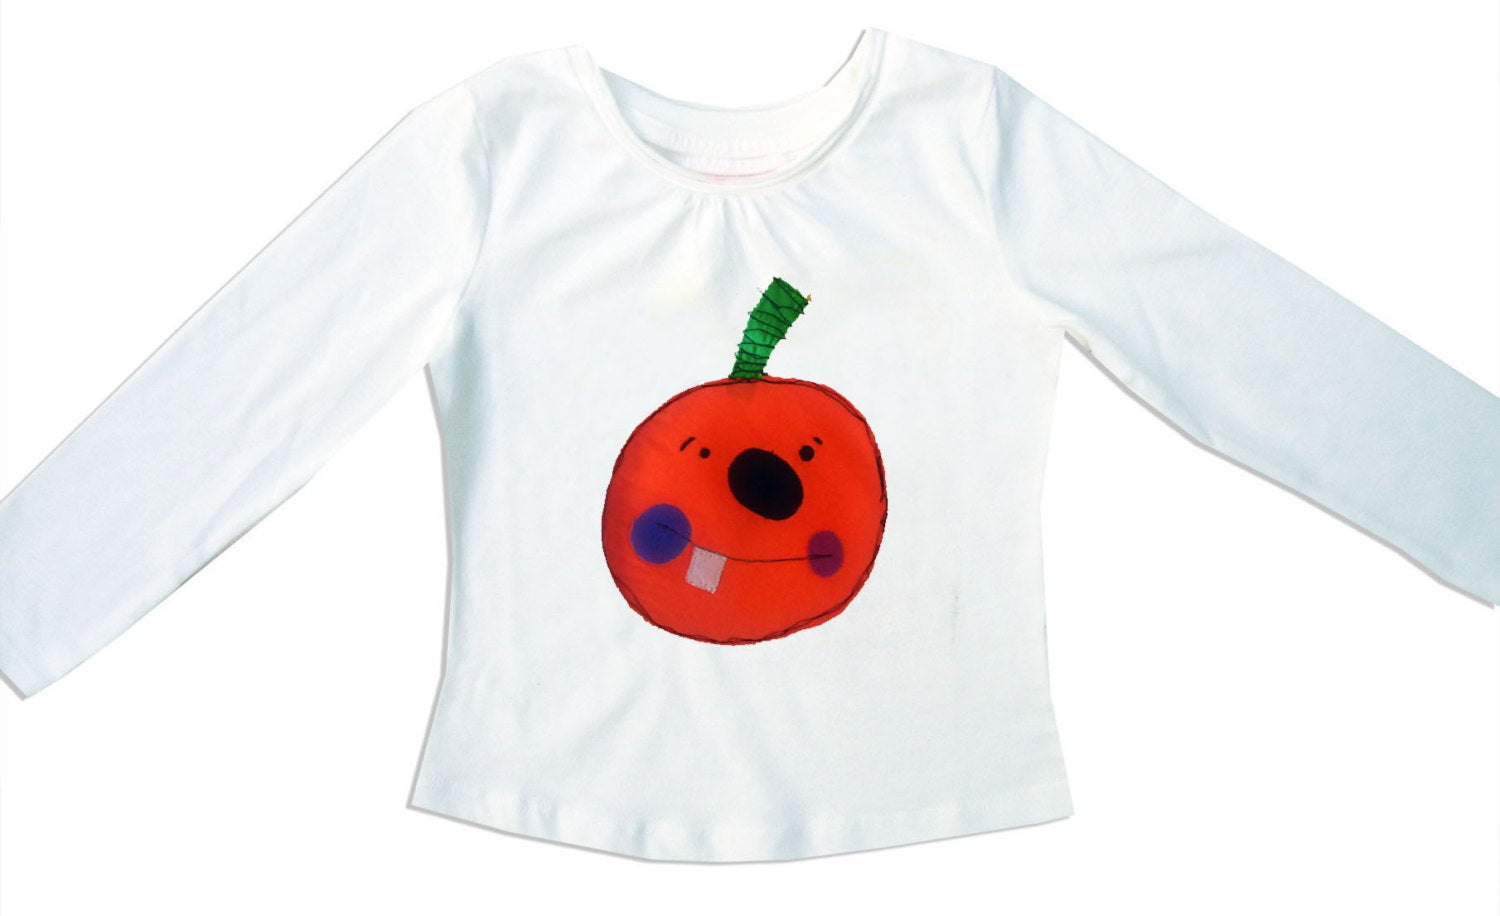 Girl's Halloween T-Shirt, Pumpkin T-shirt, Girls Clothing, Halloween Outfit, Halloween Clothes